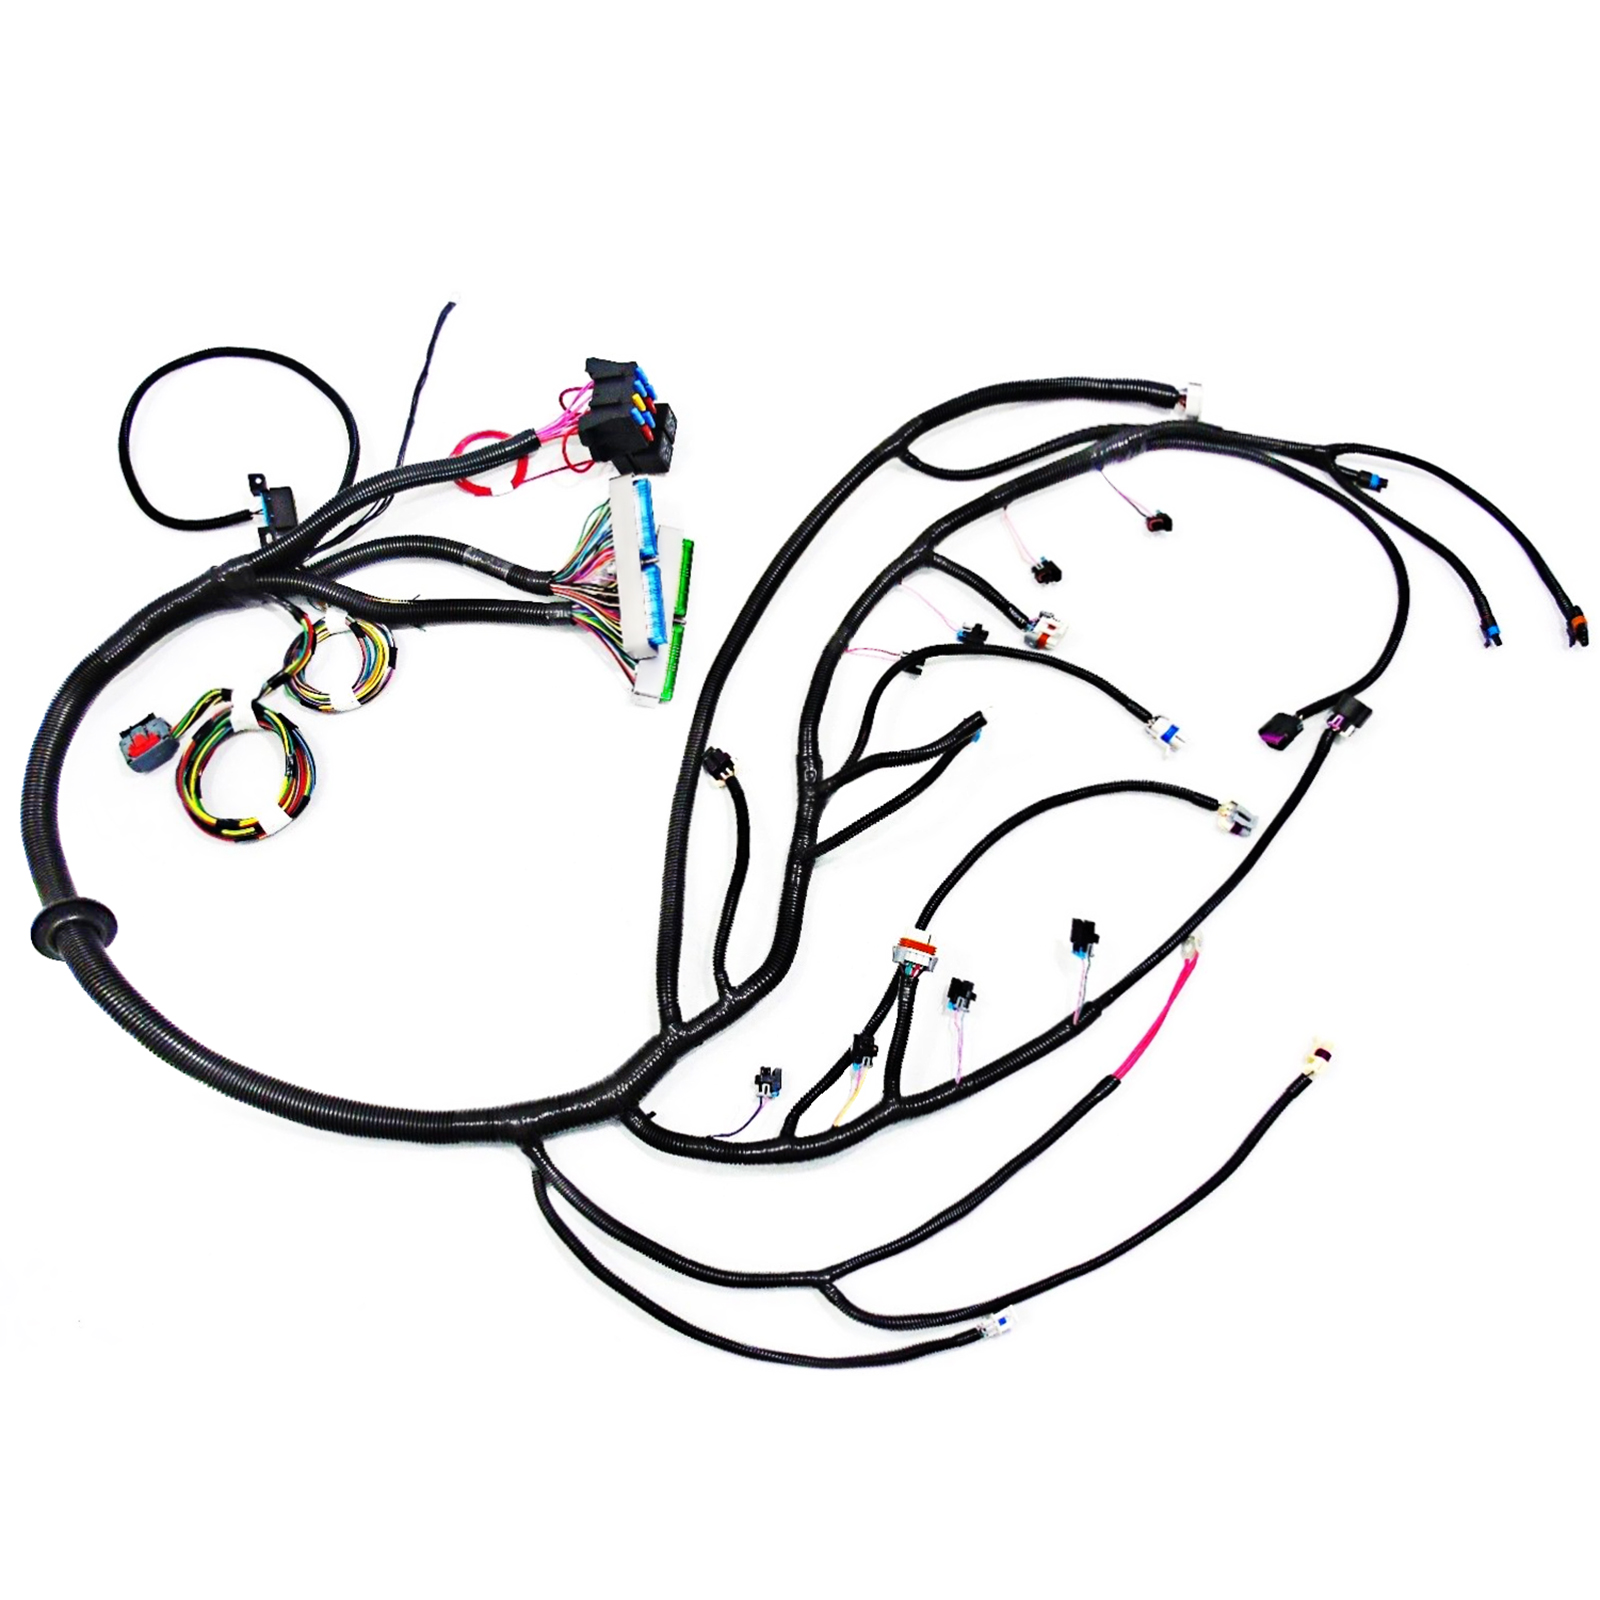 Set 03-07 LS Vortec Standalone Wire Harness W/4L60E 4.8 5